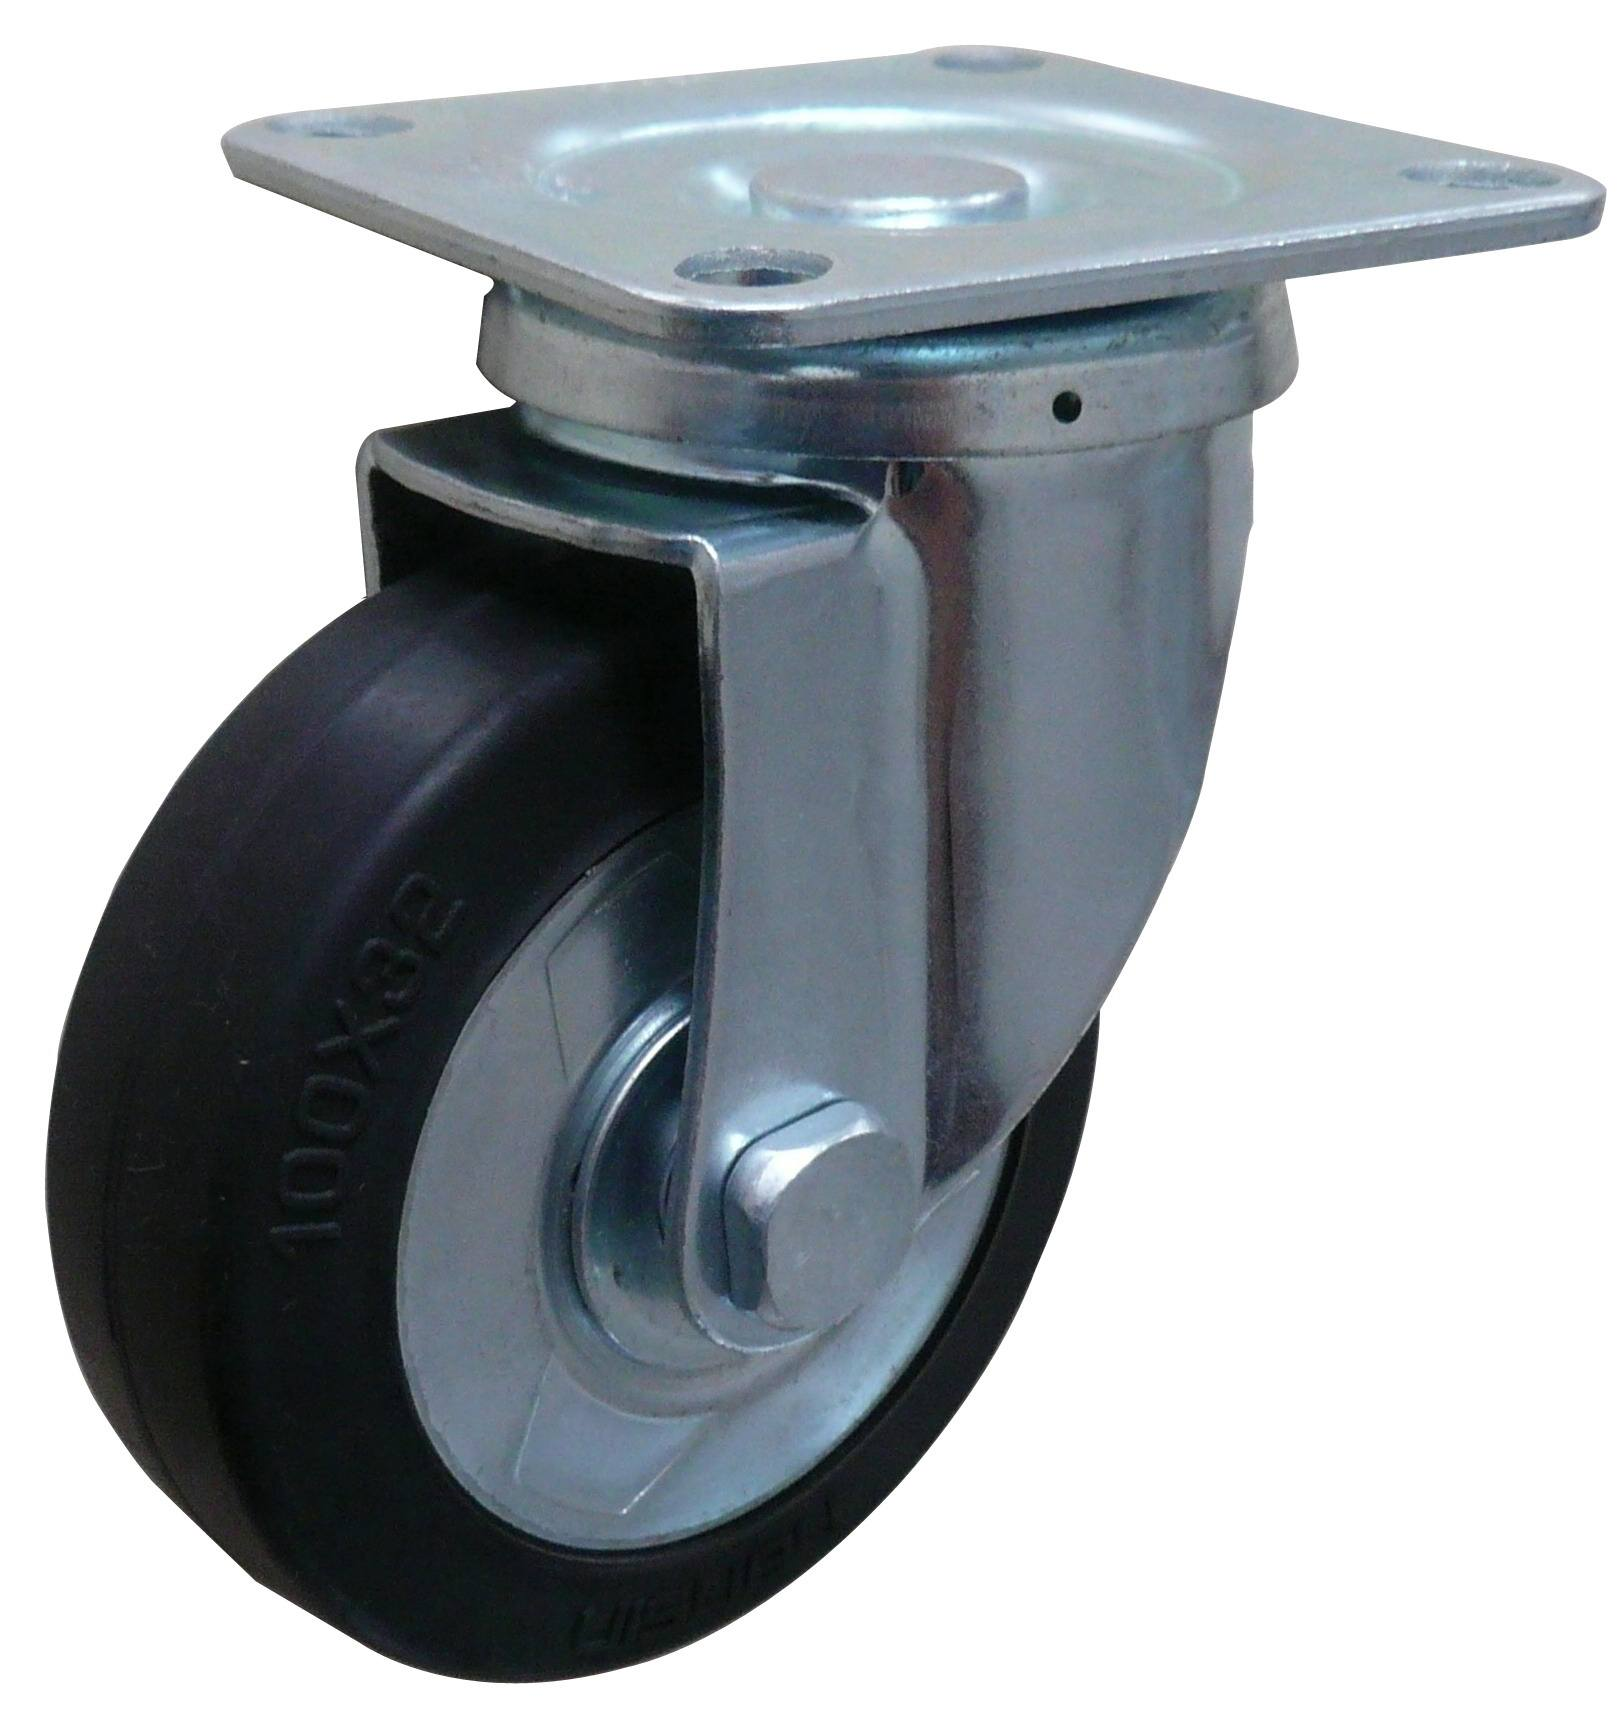 China manufacturer 6 inch rubber double ball swivel caster wheel